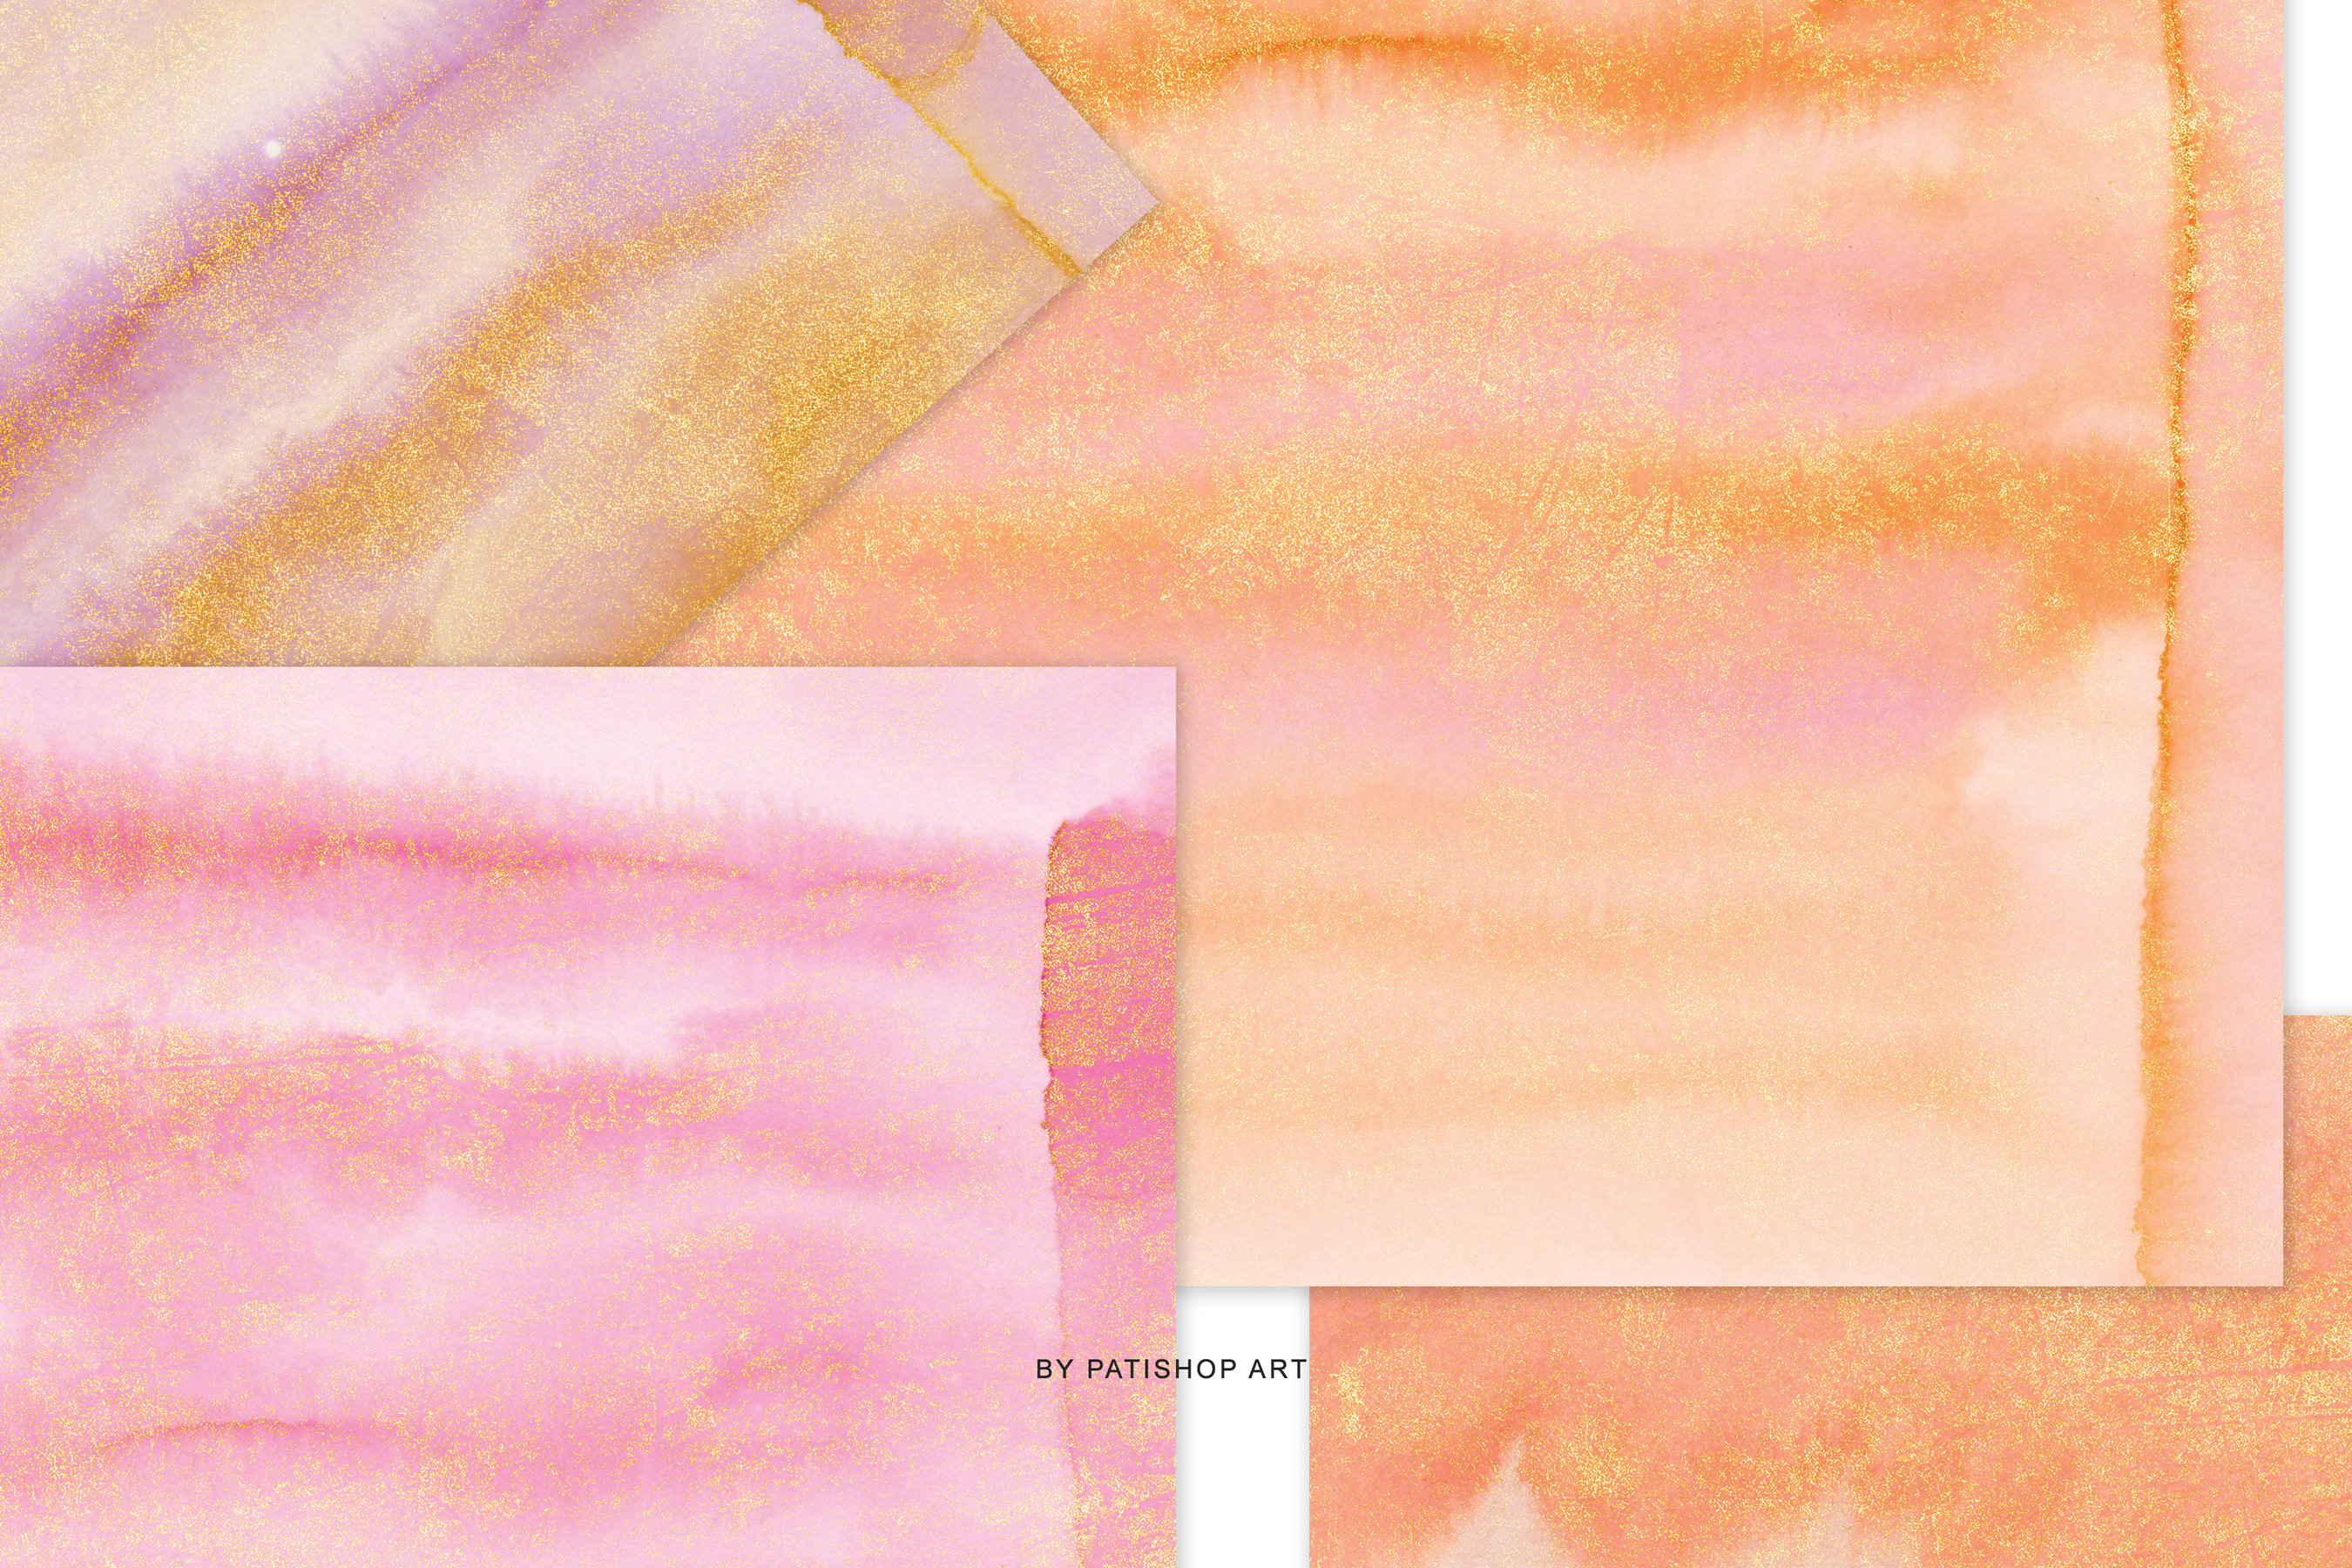 Hand Painted Watercolor Glittered Pink & Orange Backgrounds example image 6